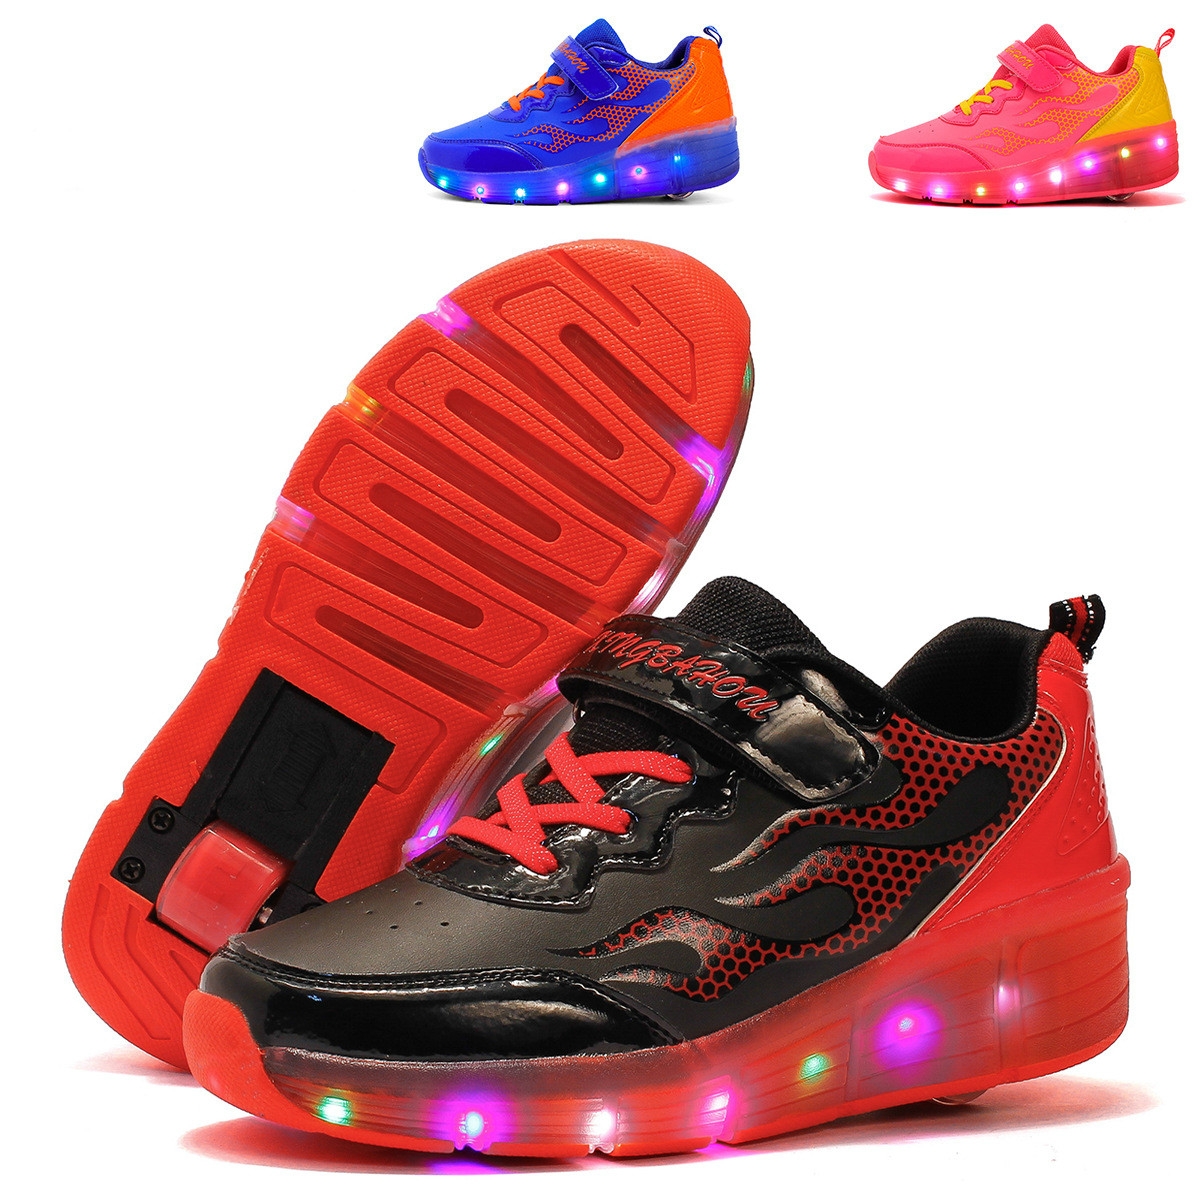 Pop out roller skate shoes - New Children Glowing Sneakers Kids Jazzy Roller Skate Shoes With Wheels Led Light Up Glowing Shoes